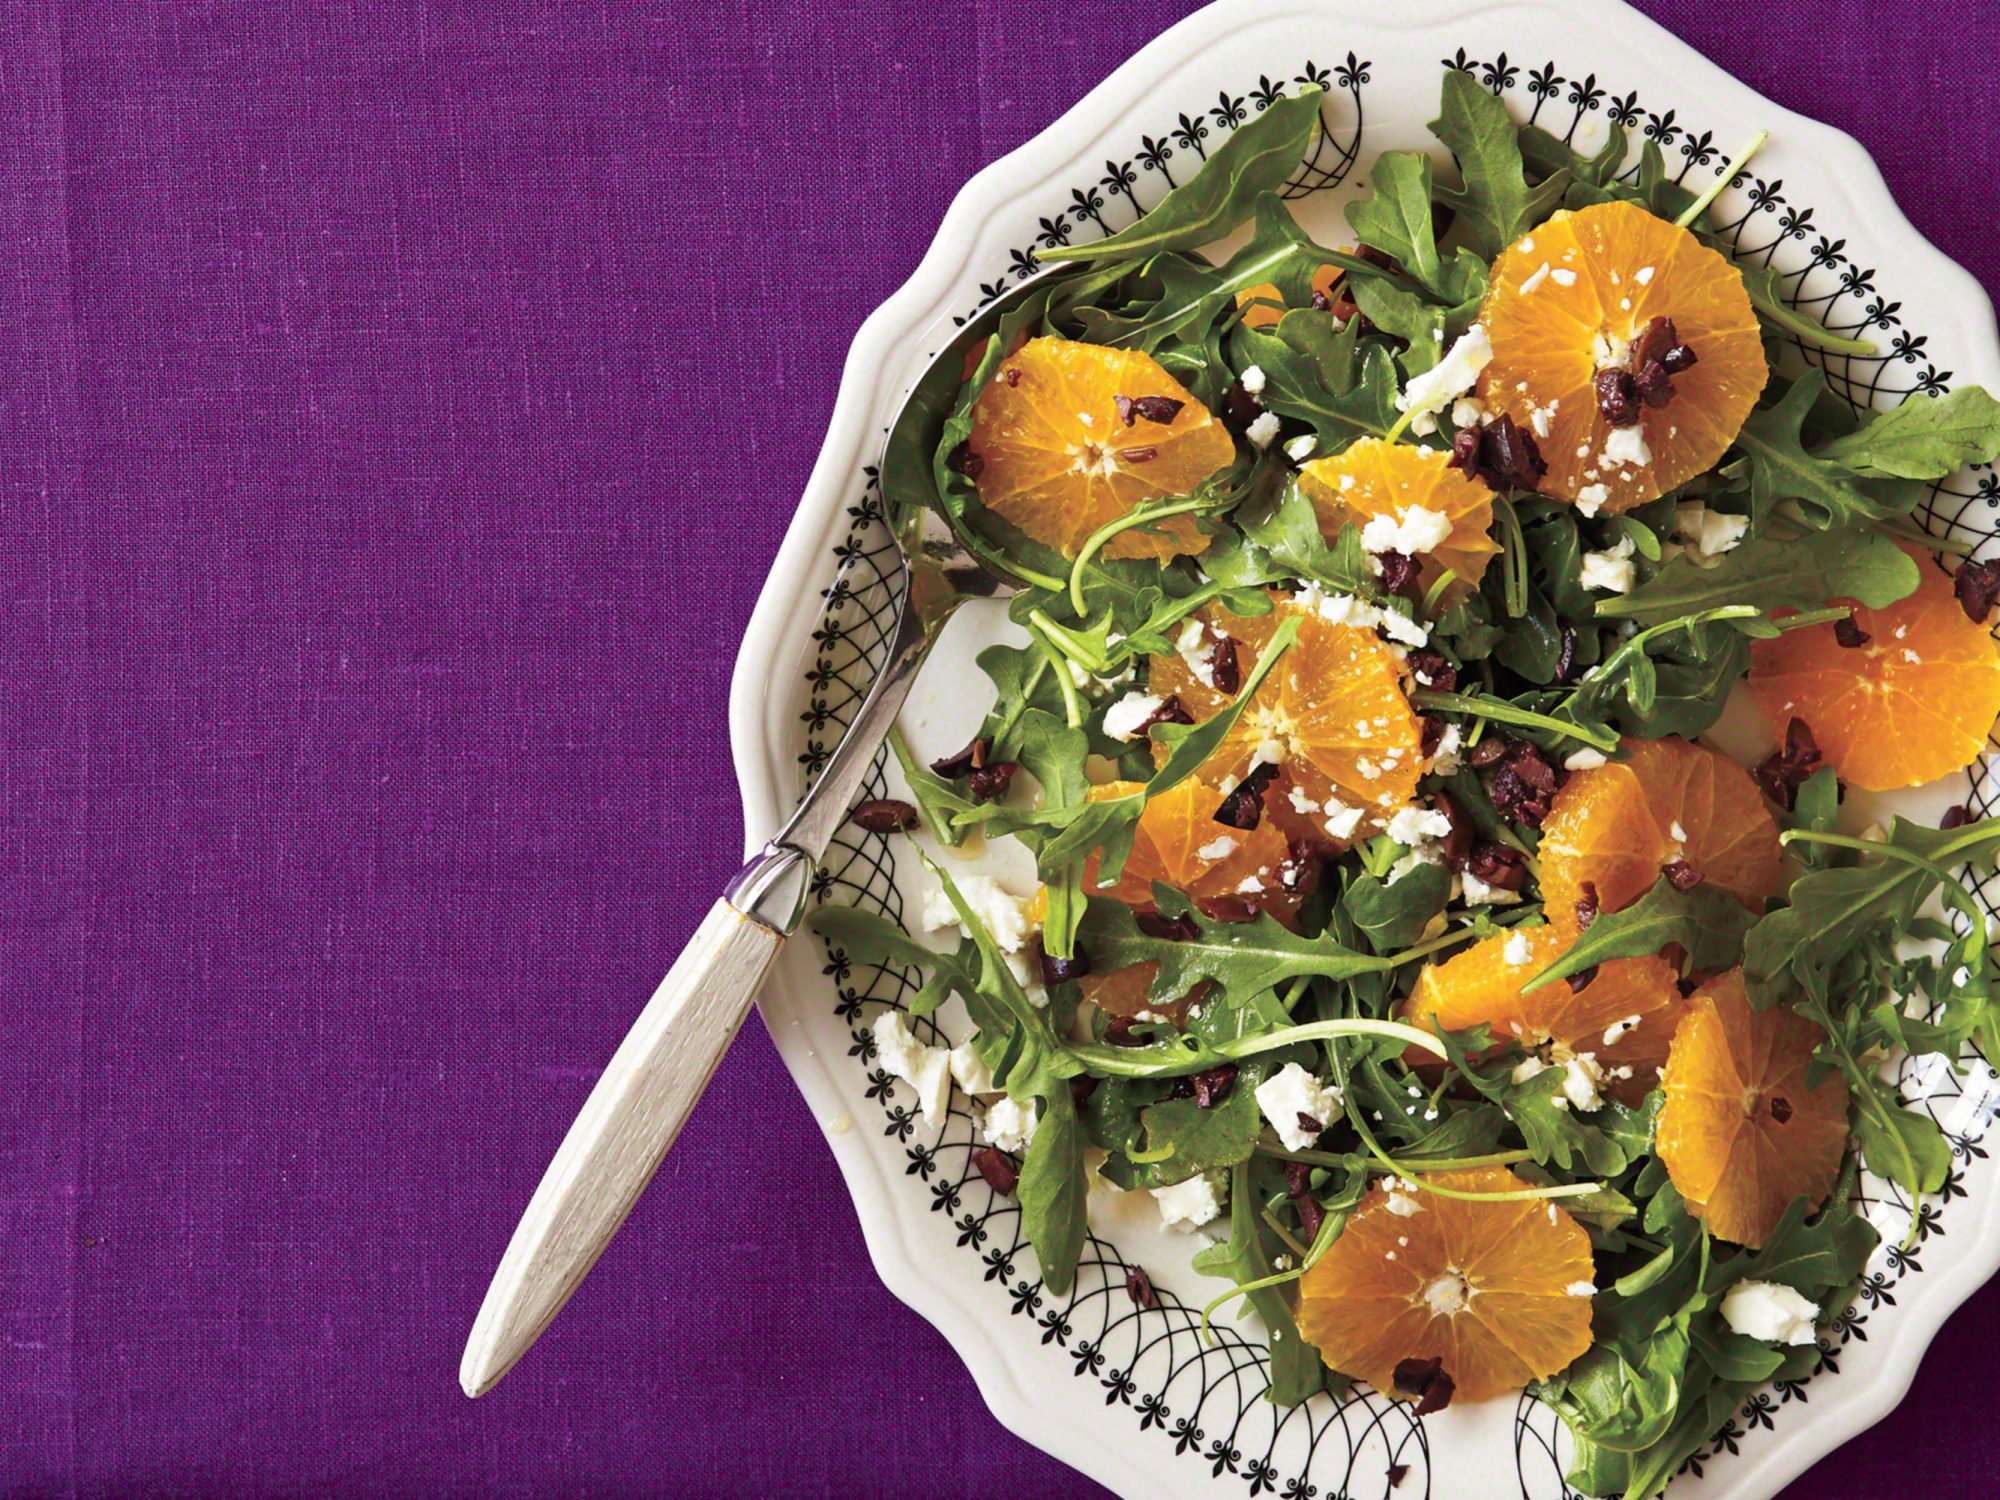 ay-Orange-and-Black Salad Platter